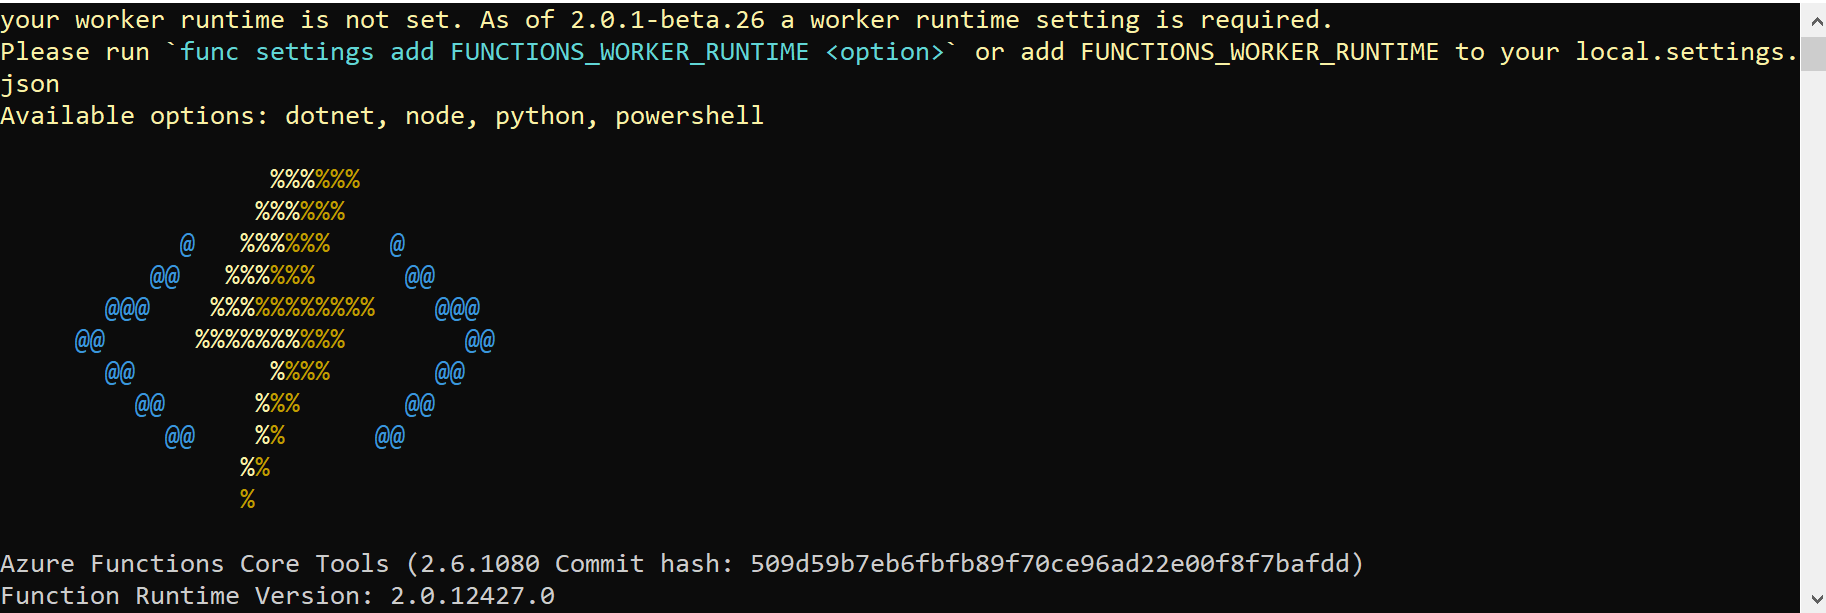 func settings add FUNCTIONS_WORKER_RUNTIME results in base64